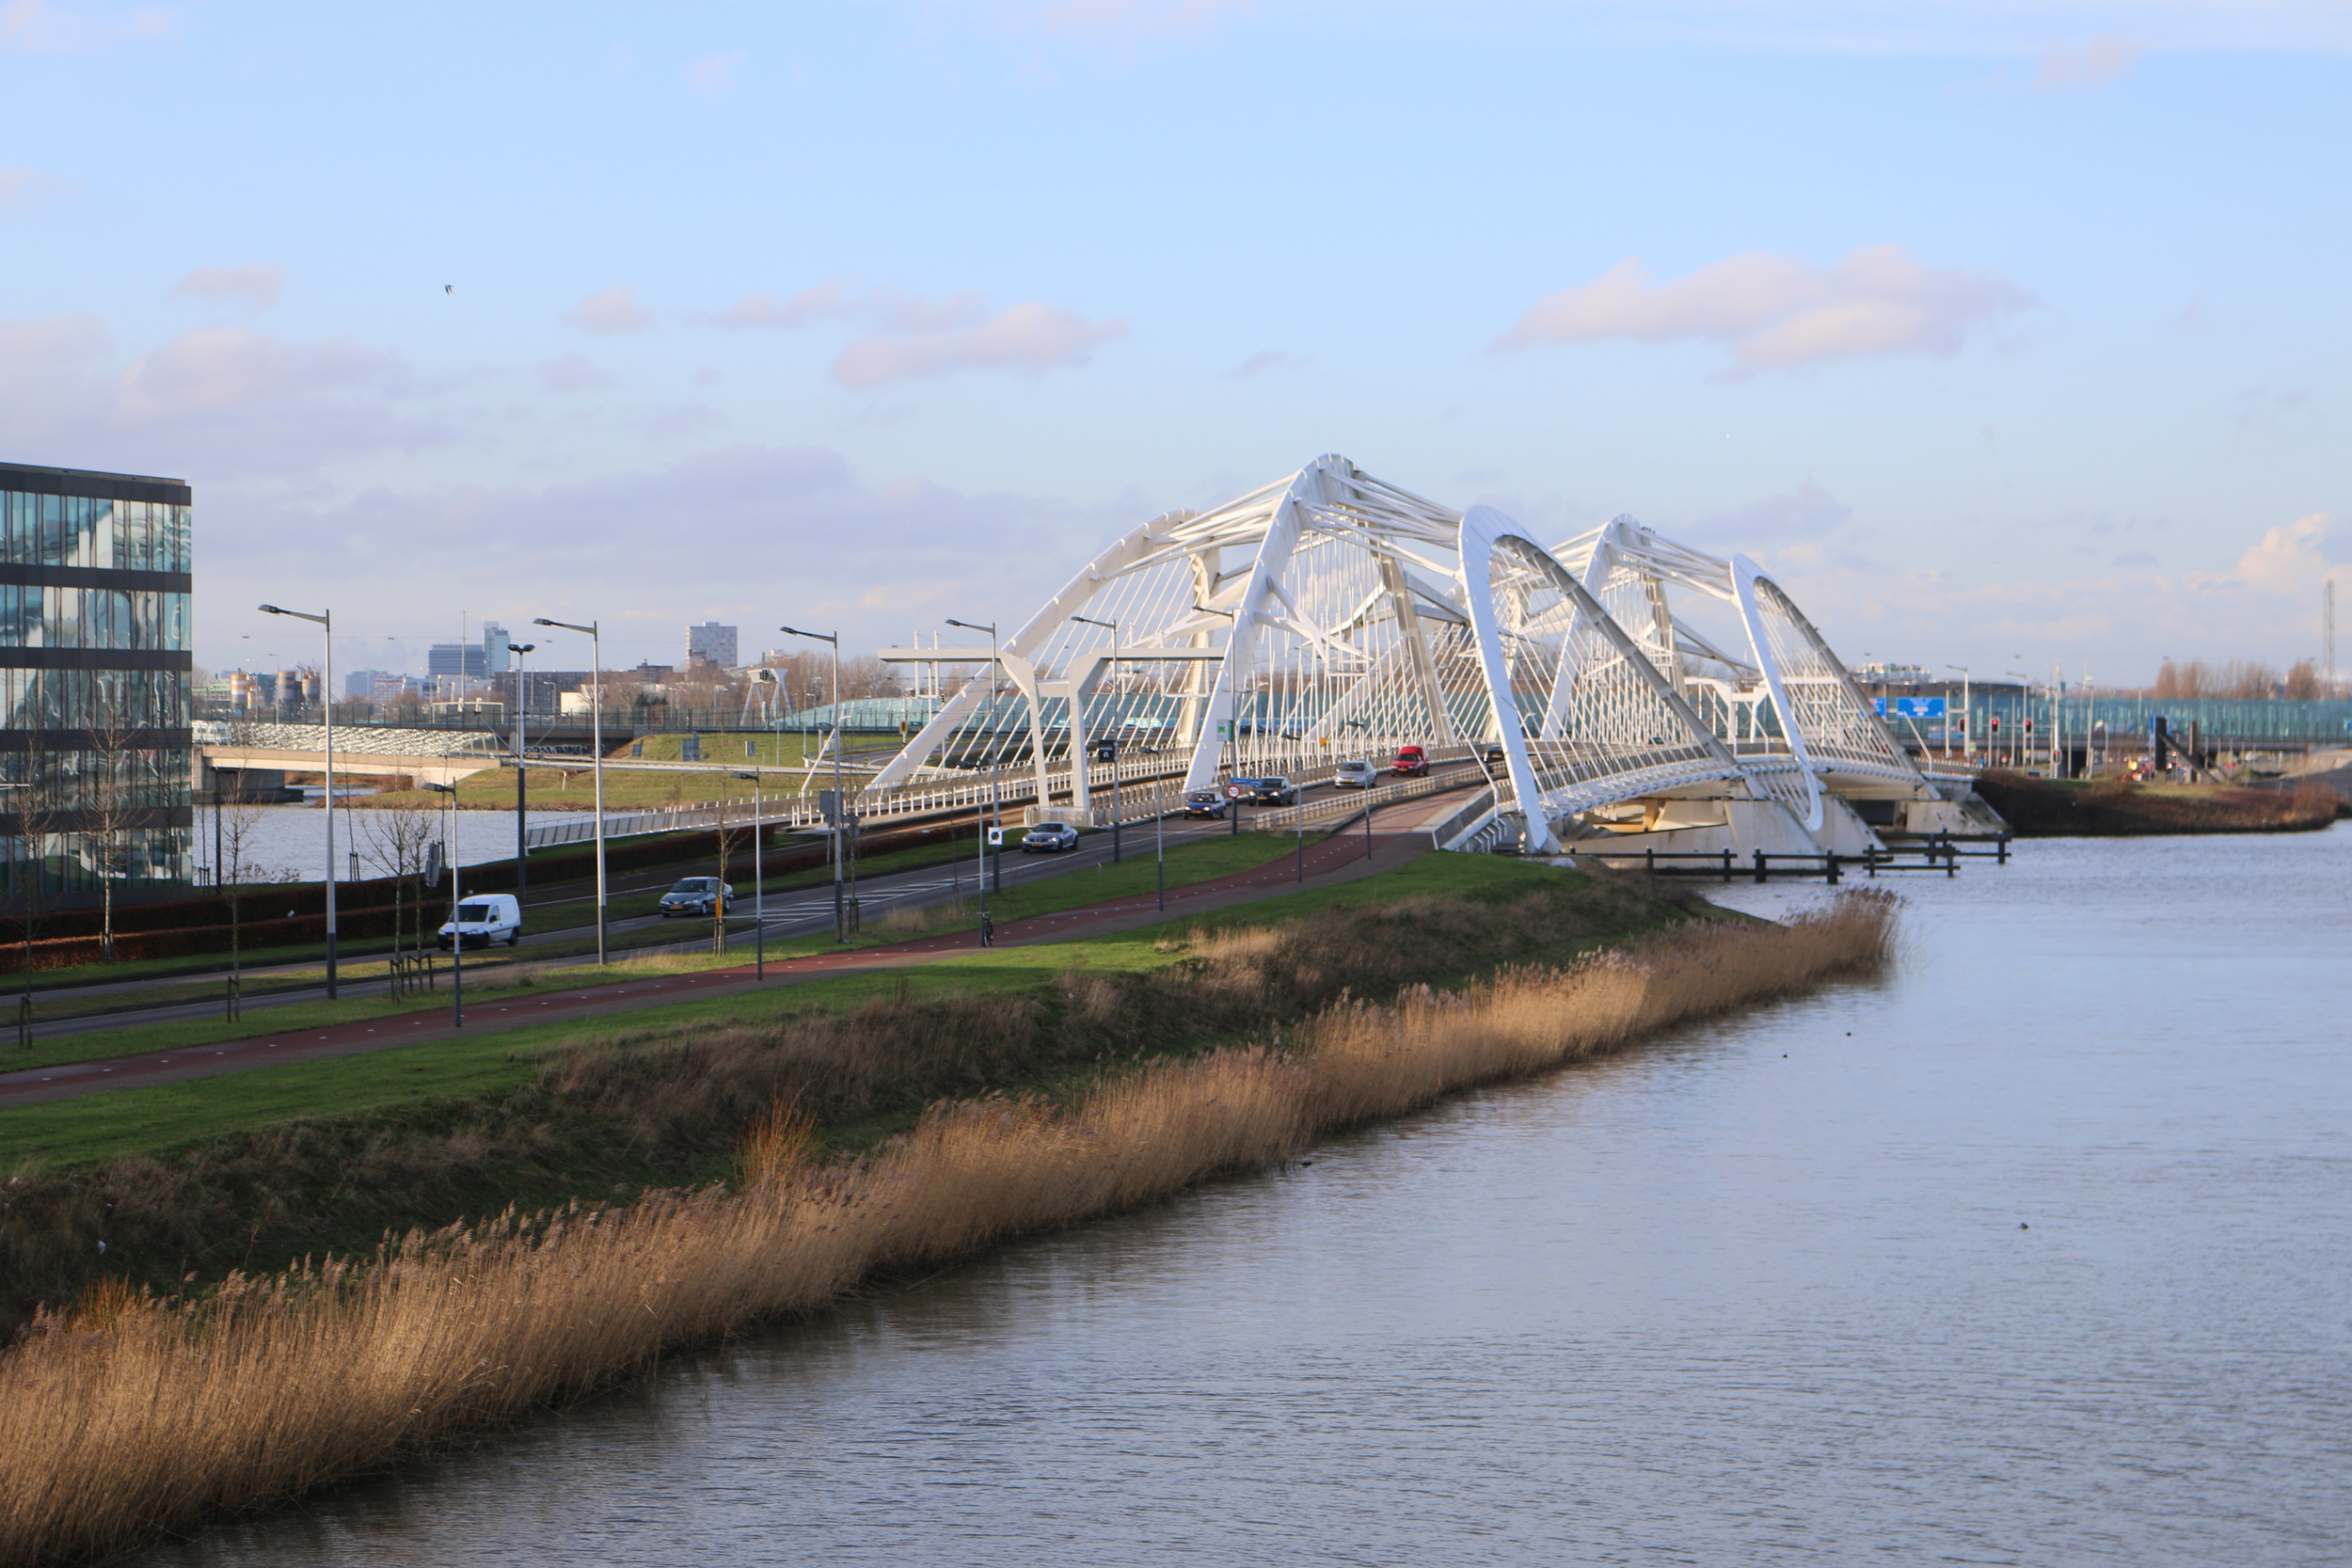 The bridges in Holland are a whole chapter to themselves - never seen as many different bridges in one country